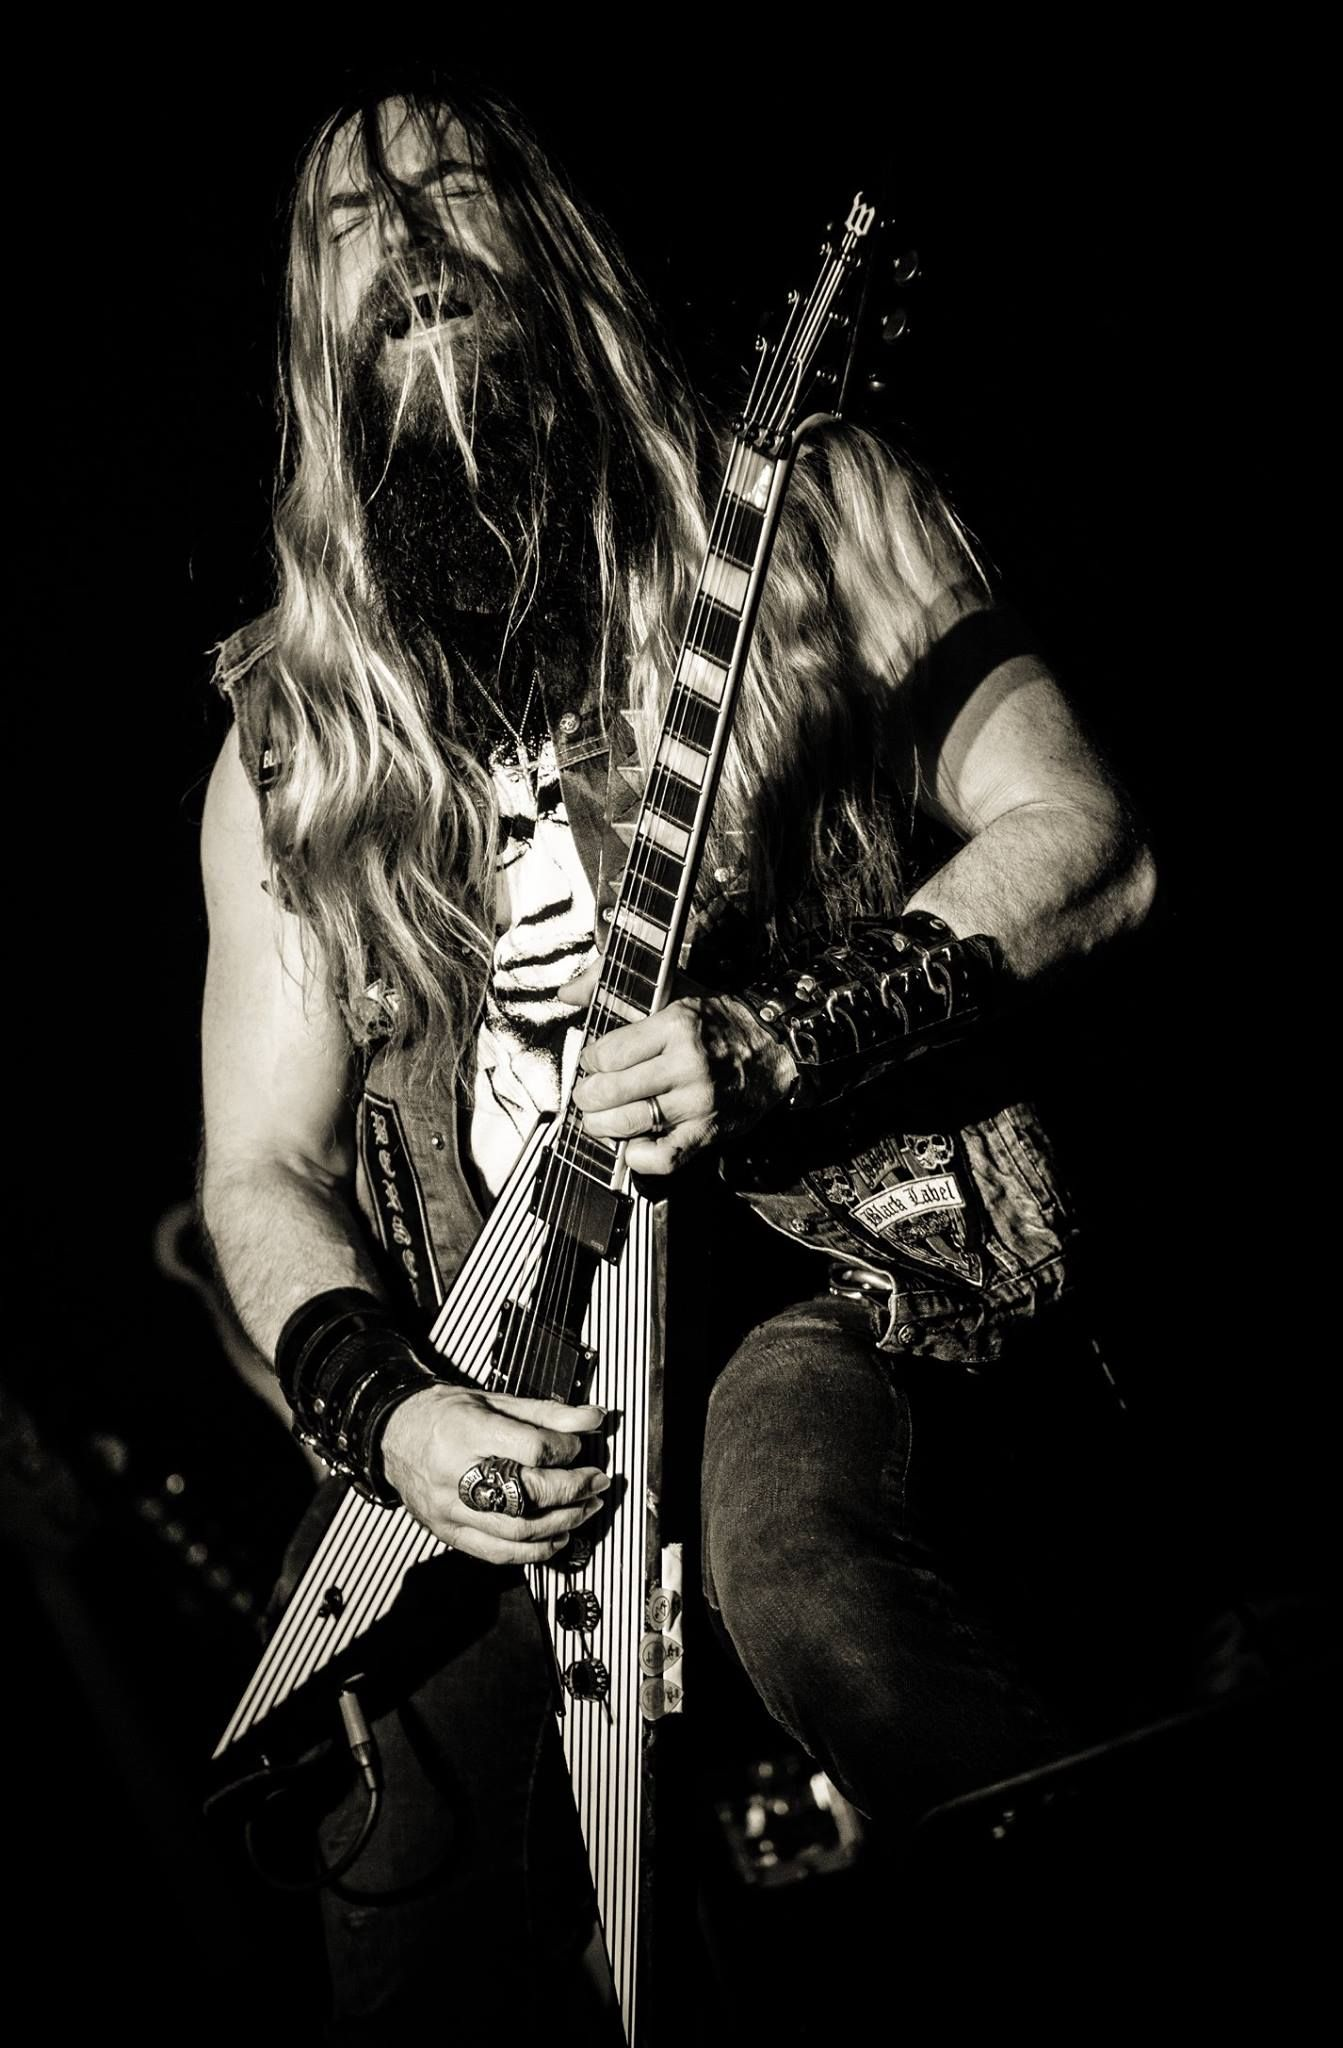 Zakk wylde · Mirman graphy